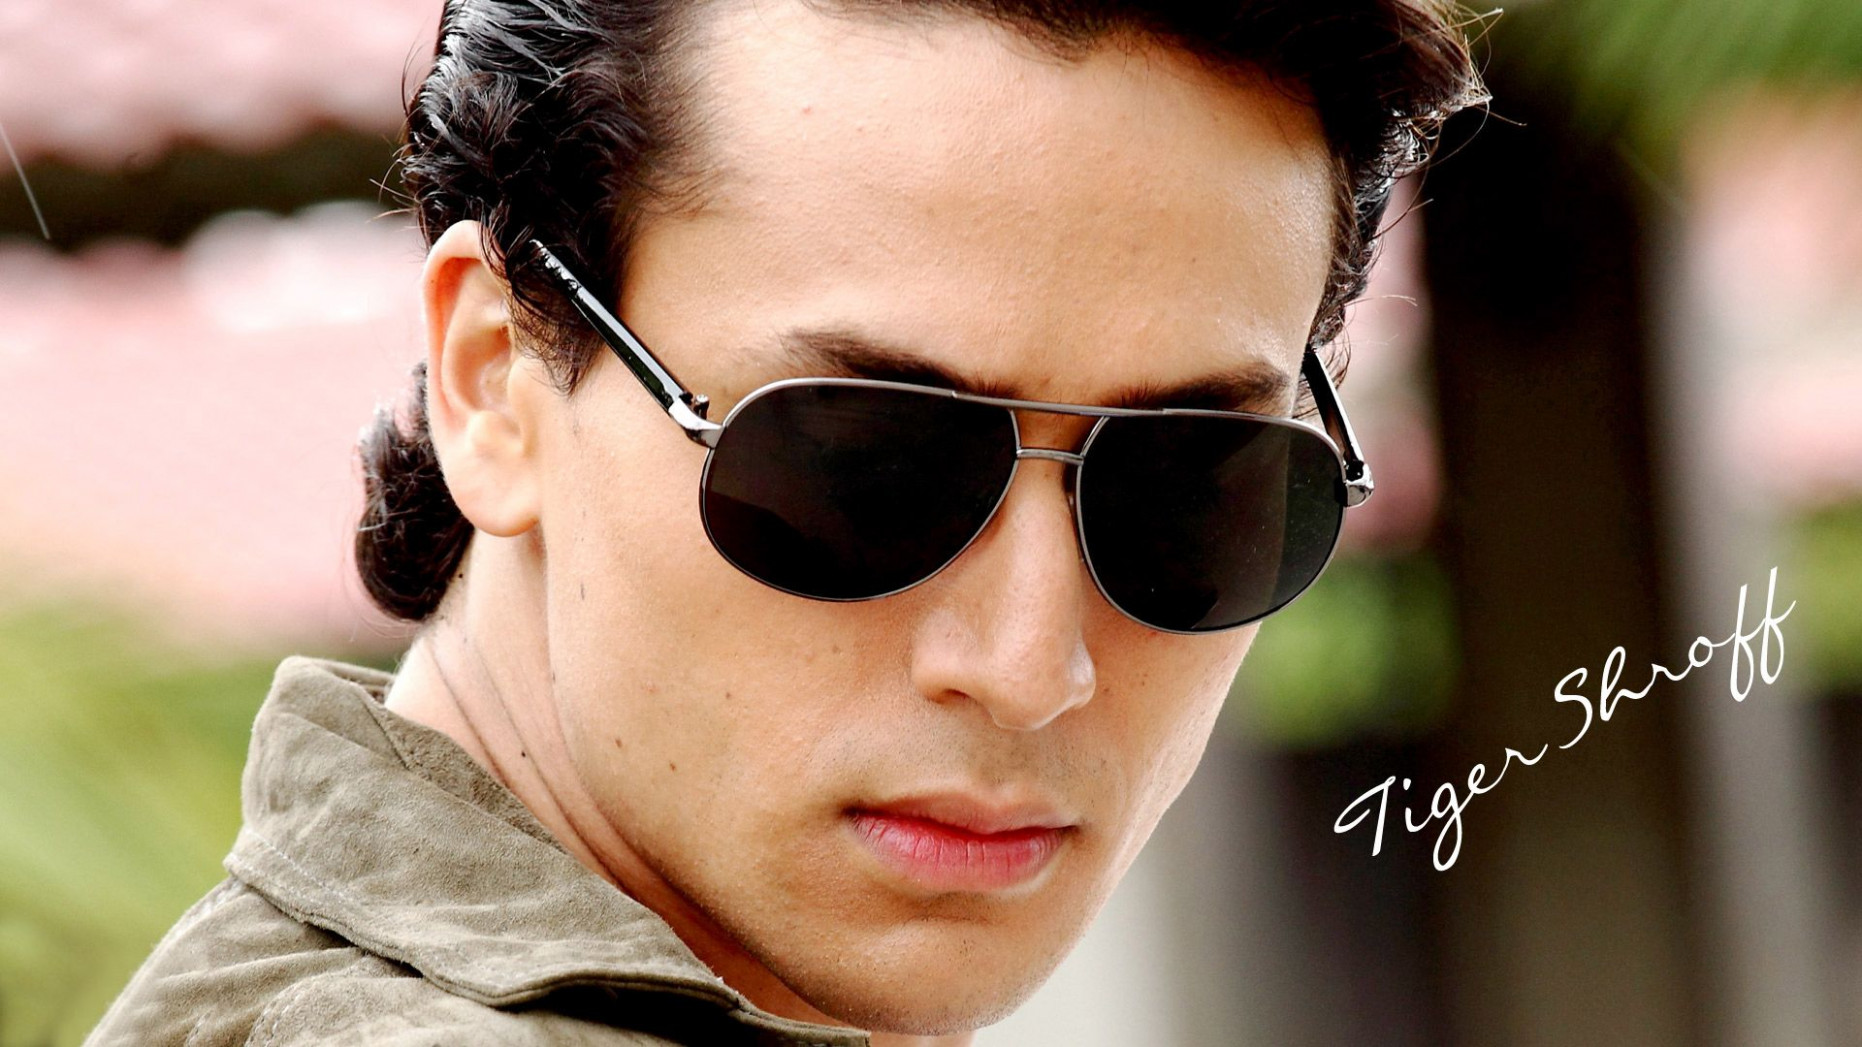 Tiger Shroff Bollywood Actor Hd Wallpaper Bollywood, Actor ...